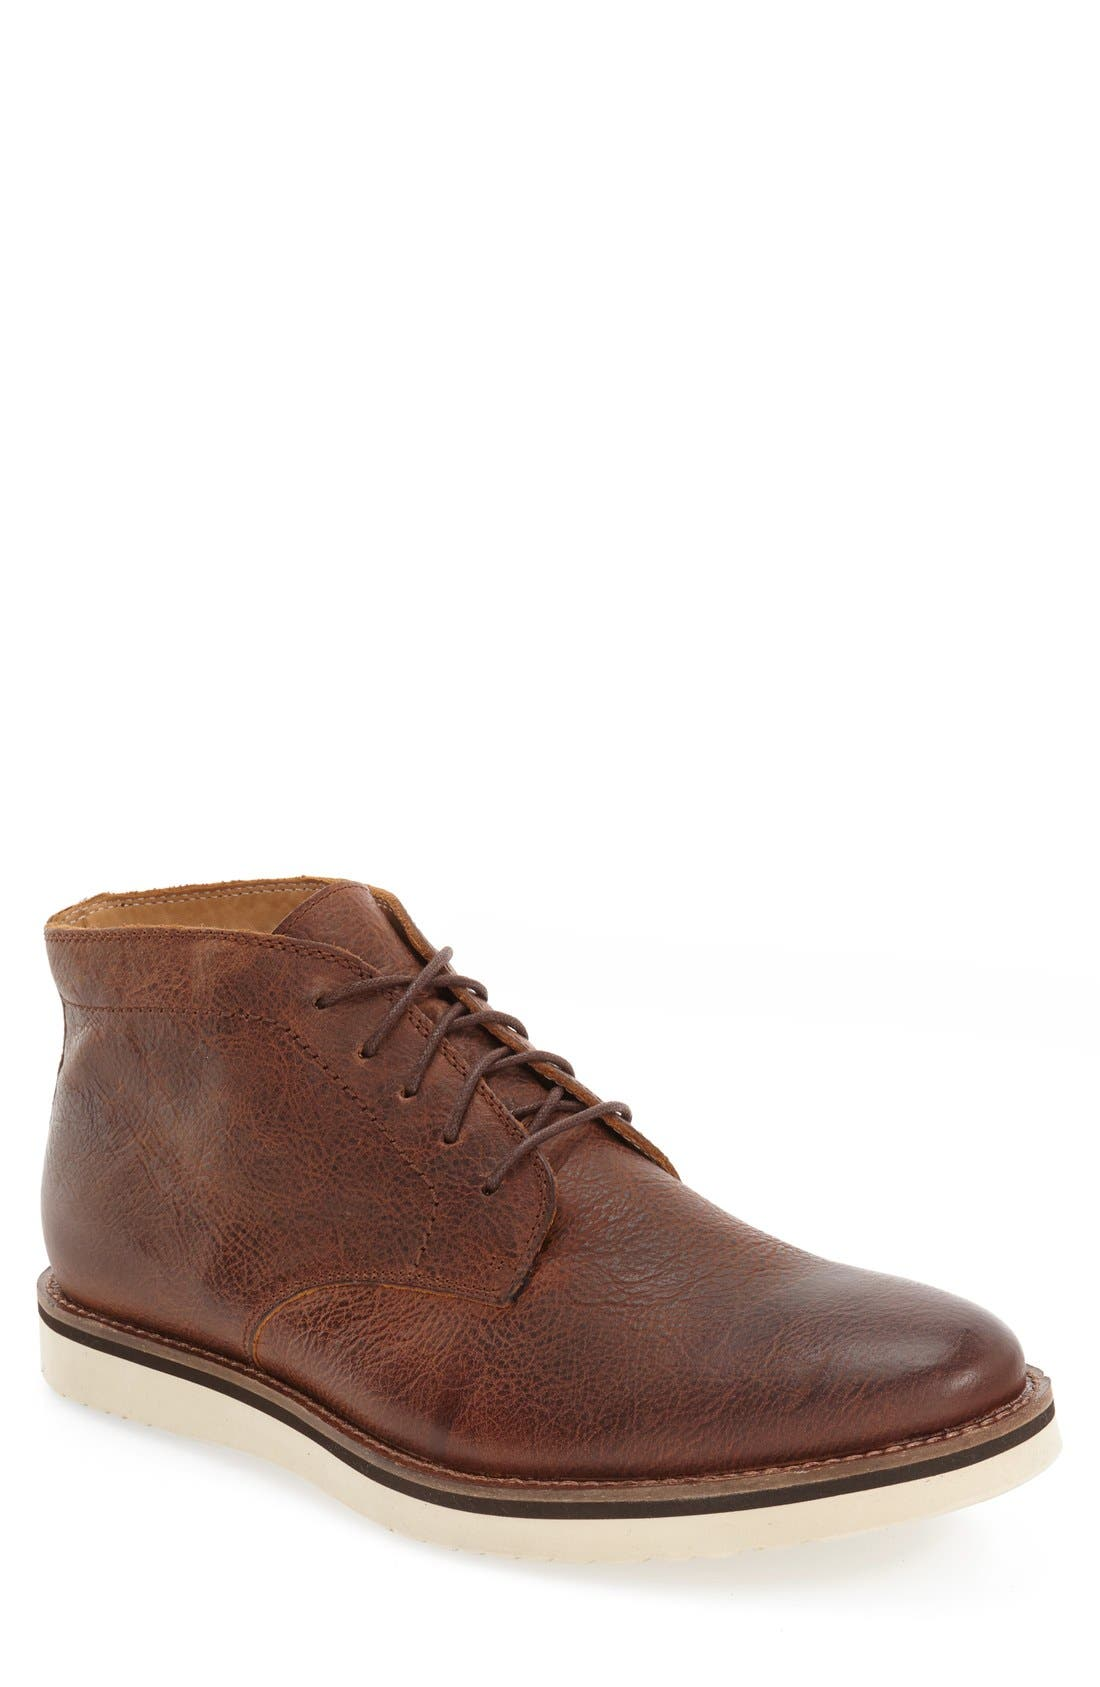 'Farley' Chukka Boot,                             Main thumbnail 1, color,                             Caramel Leather